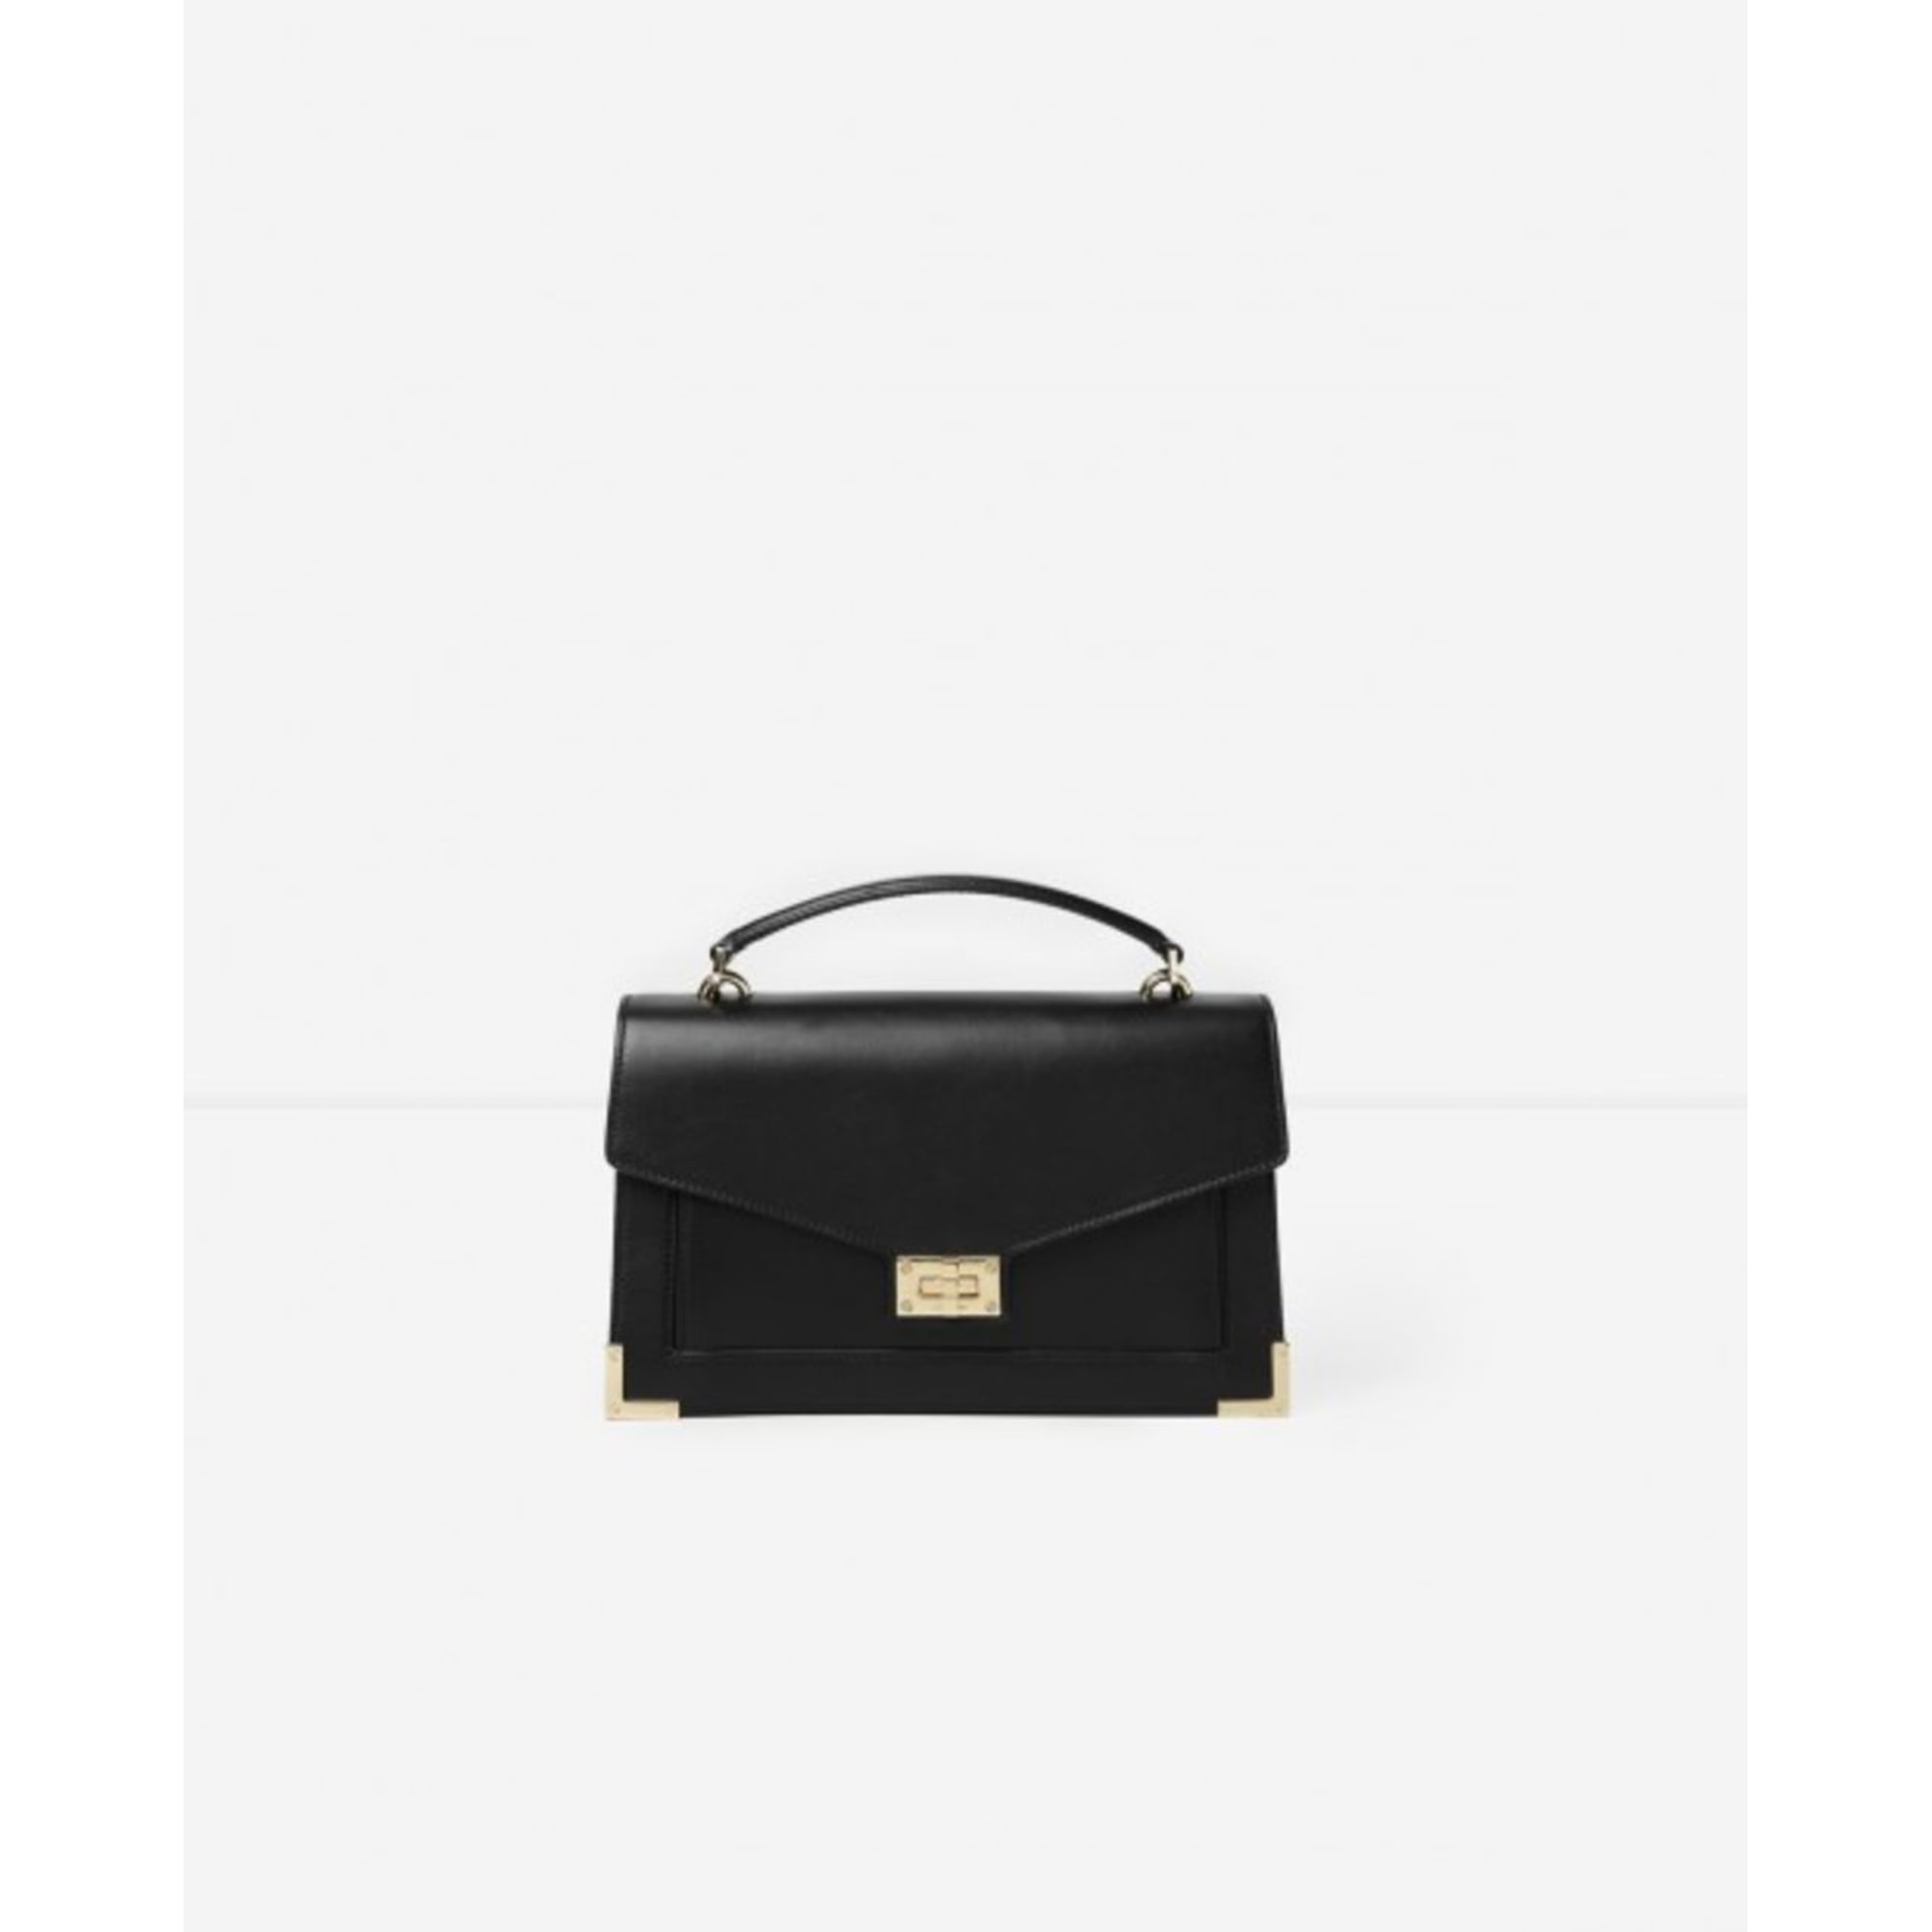 regard détaillé ebb42 5a4c0 Sac à main en cuir THE KOOPLES